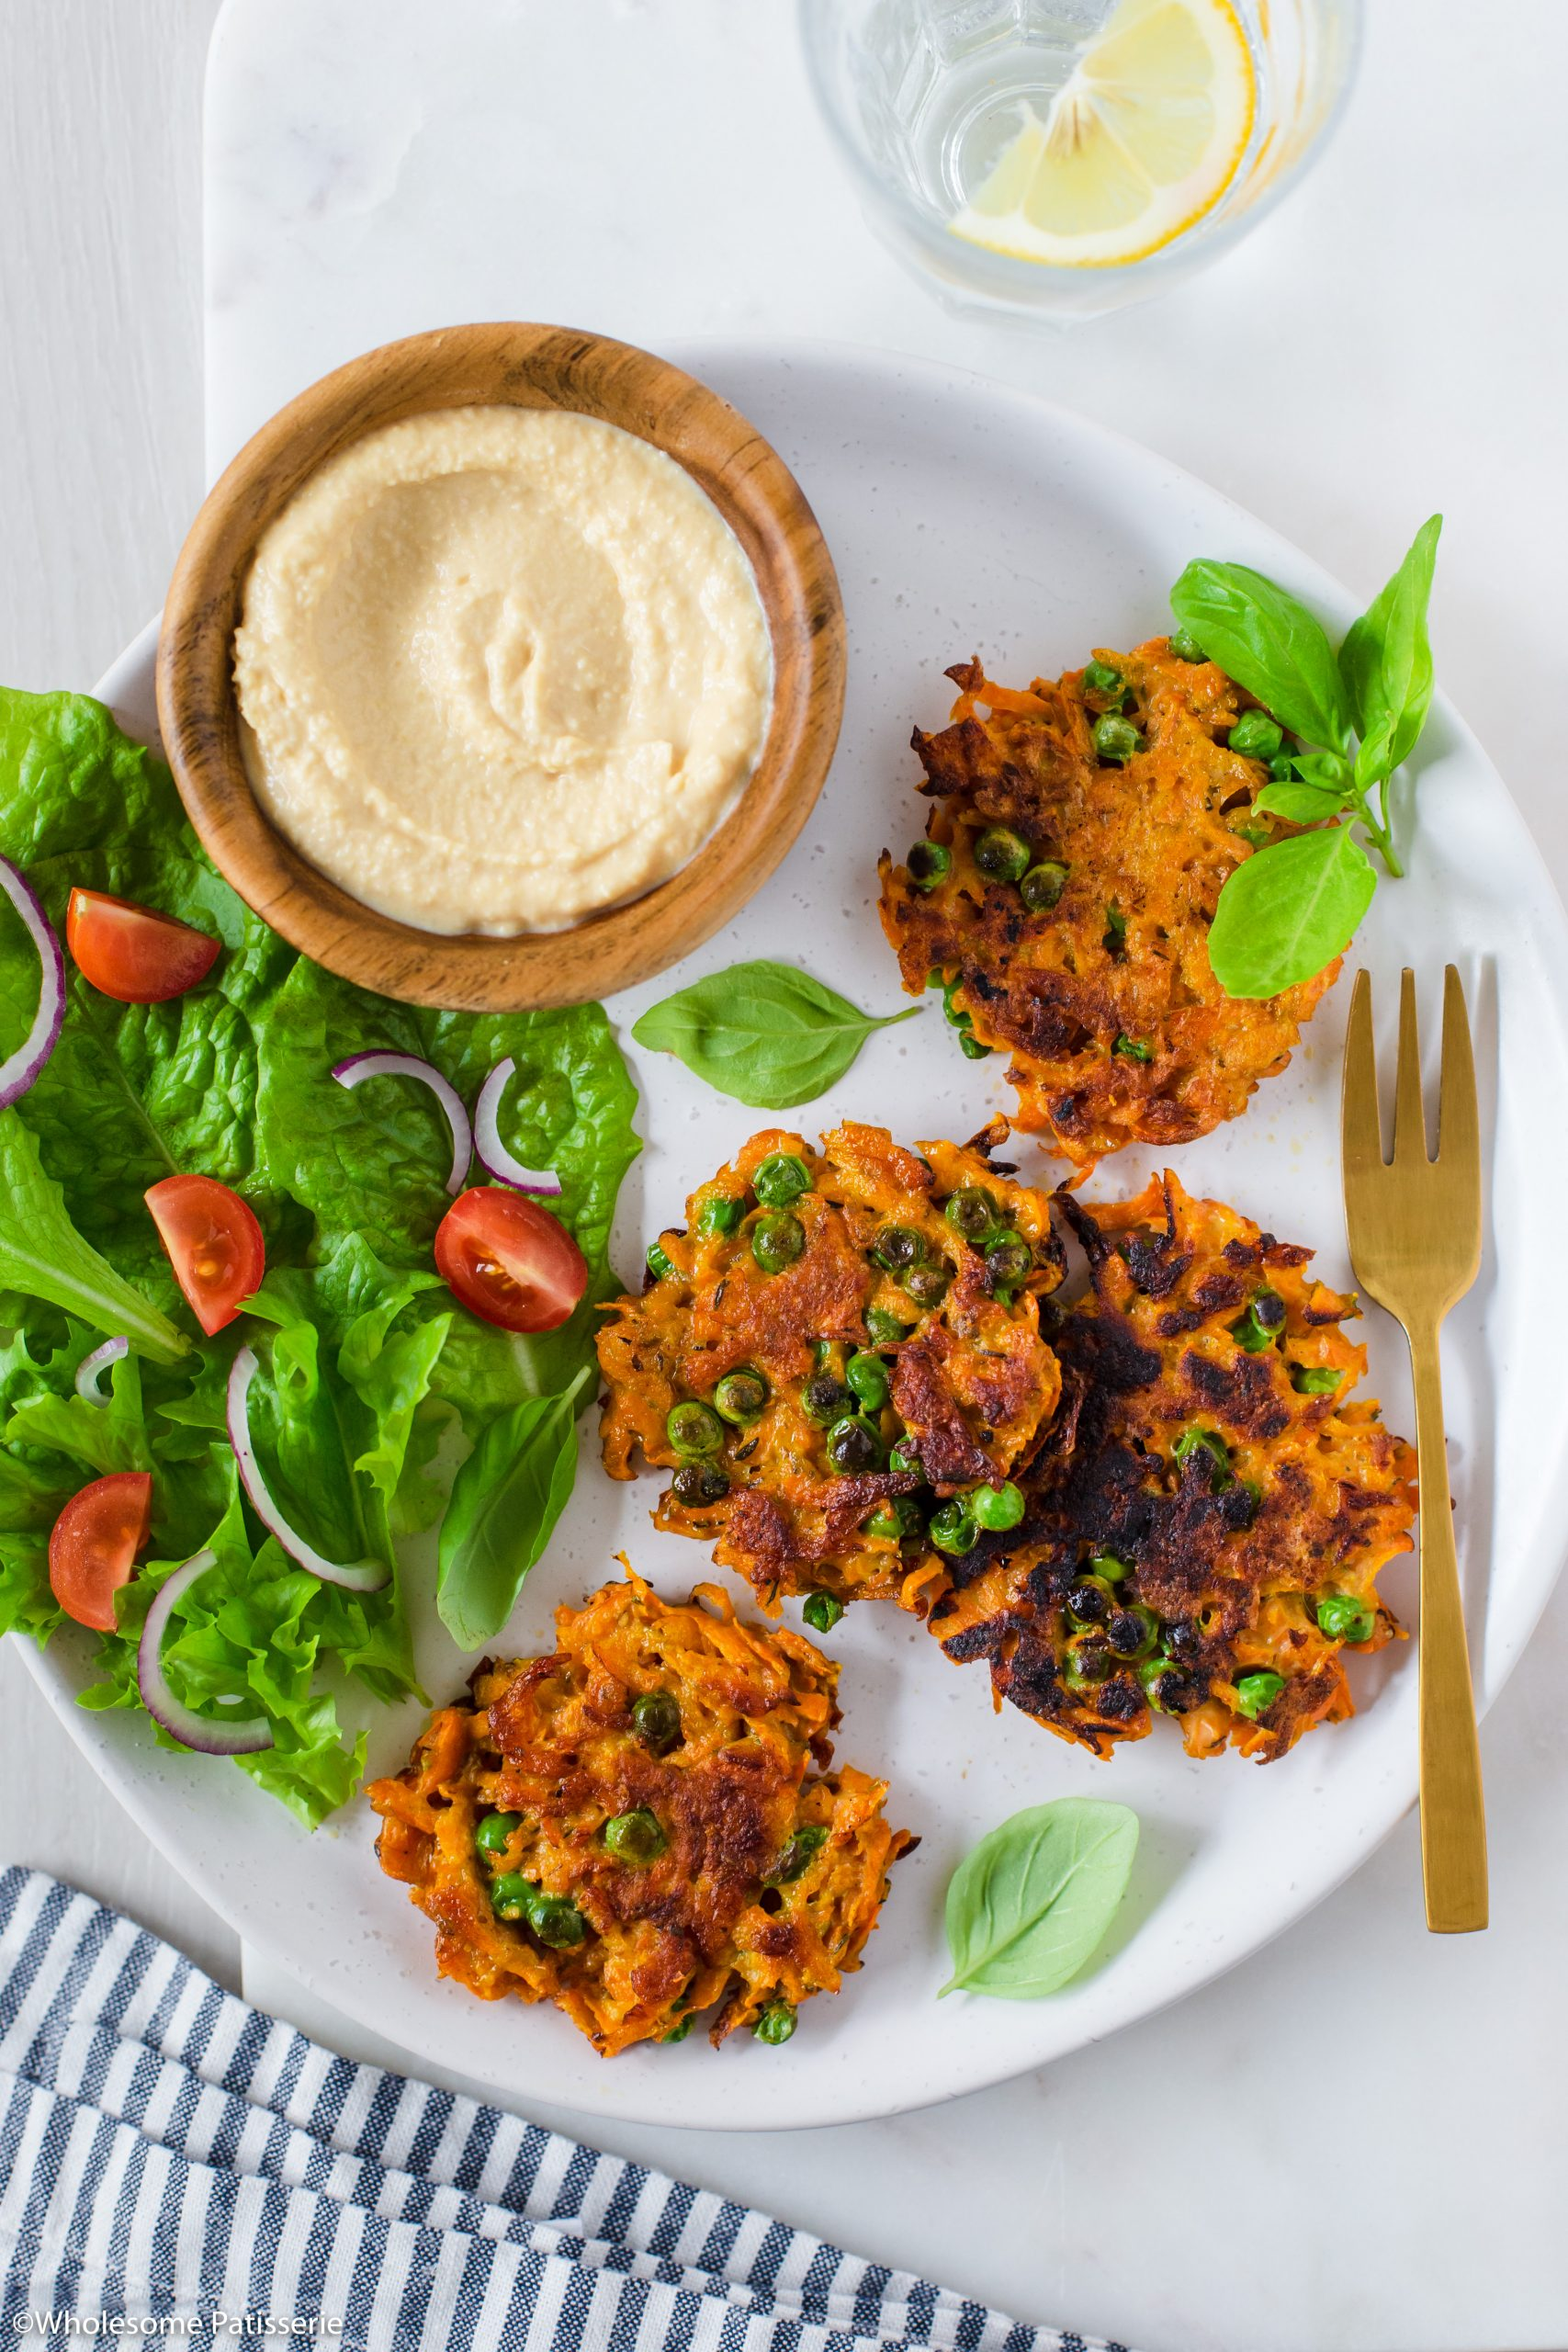 Easy Carrot & Pea Fritters with Hummus & Garden Salad